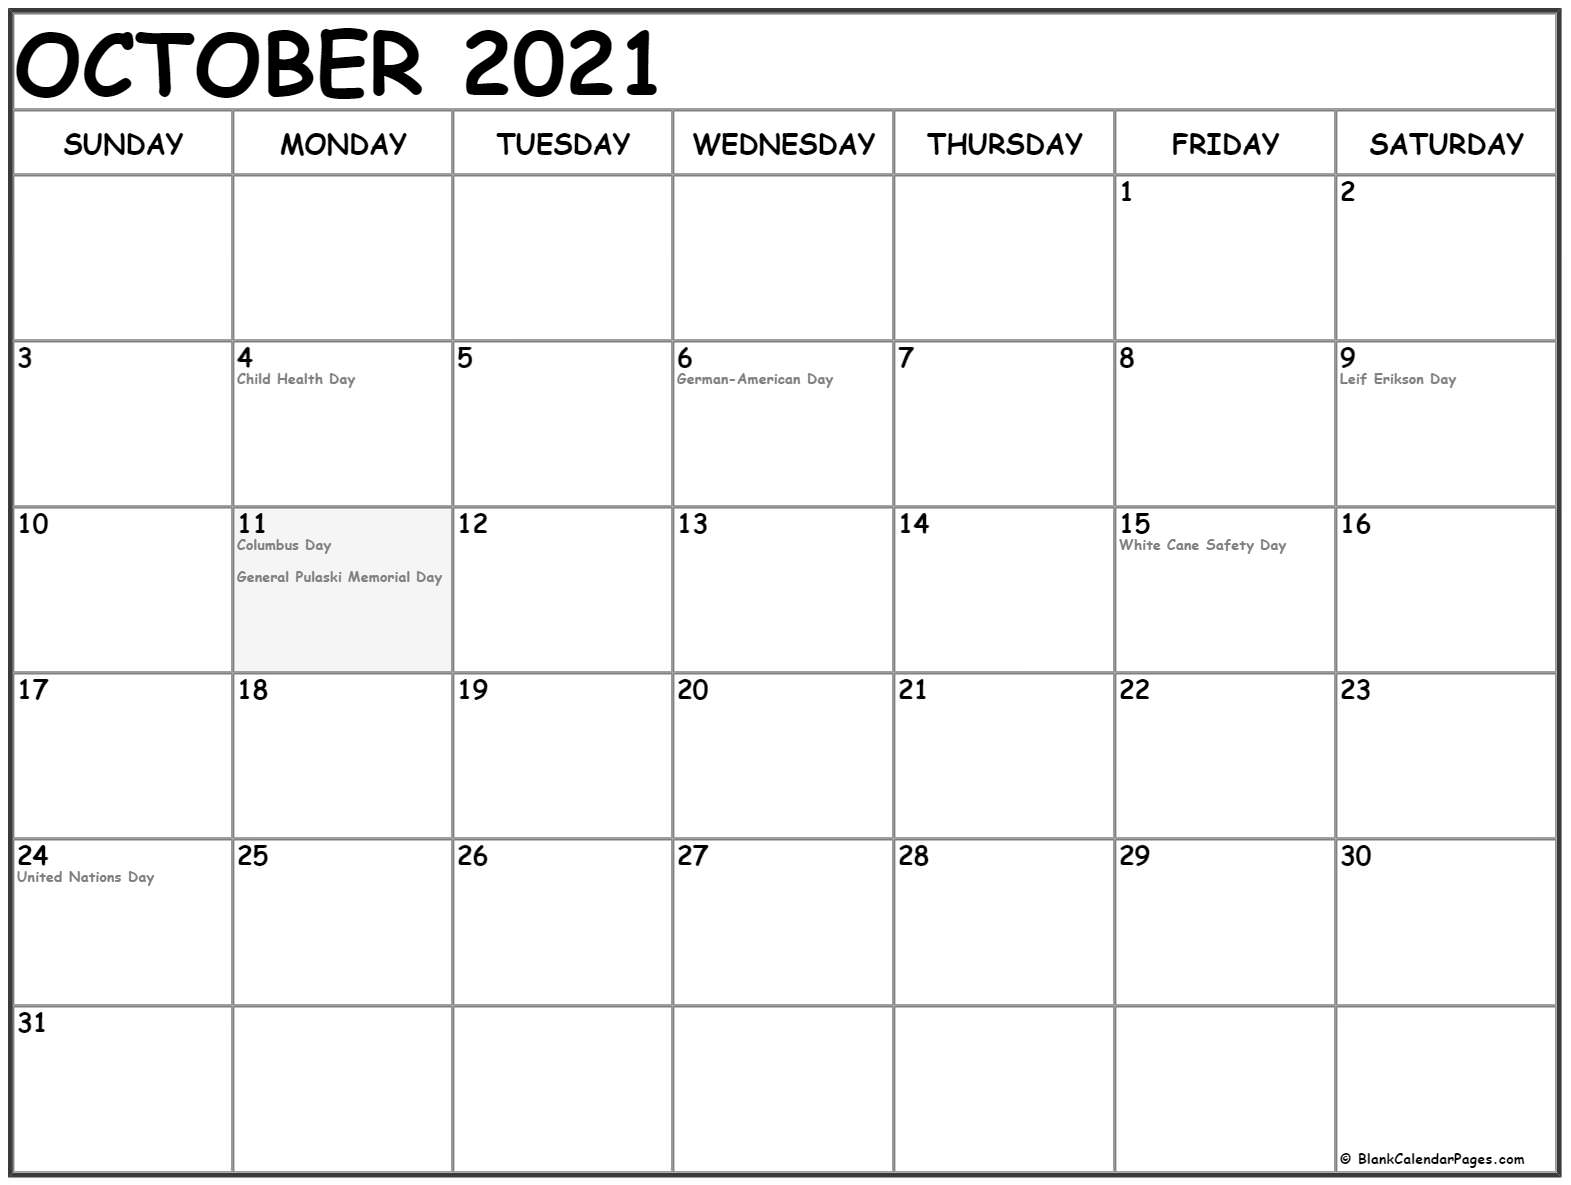 October 2019 calendar with USA holidays